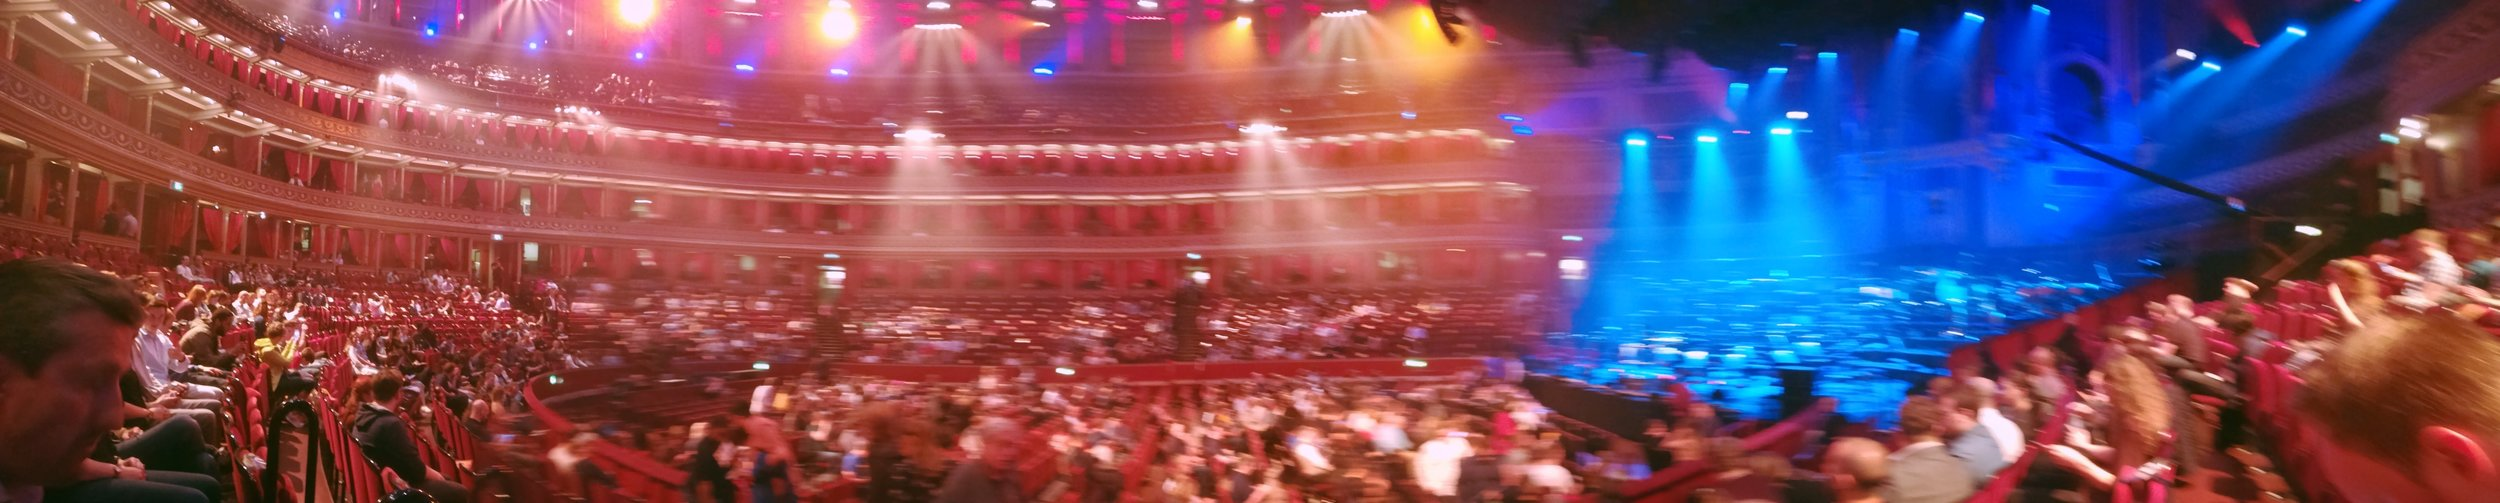 My rather blurry panorama of the Royal Albert Hall.